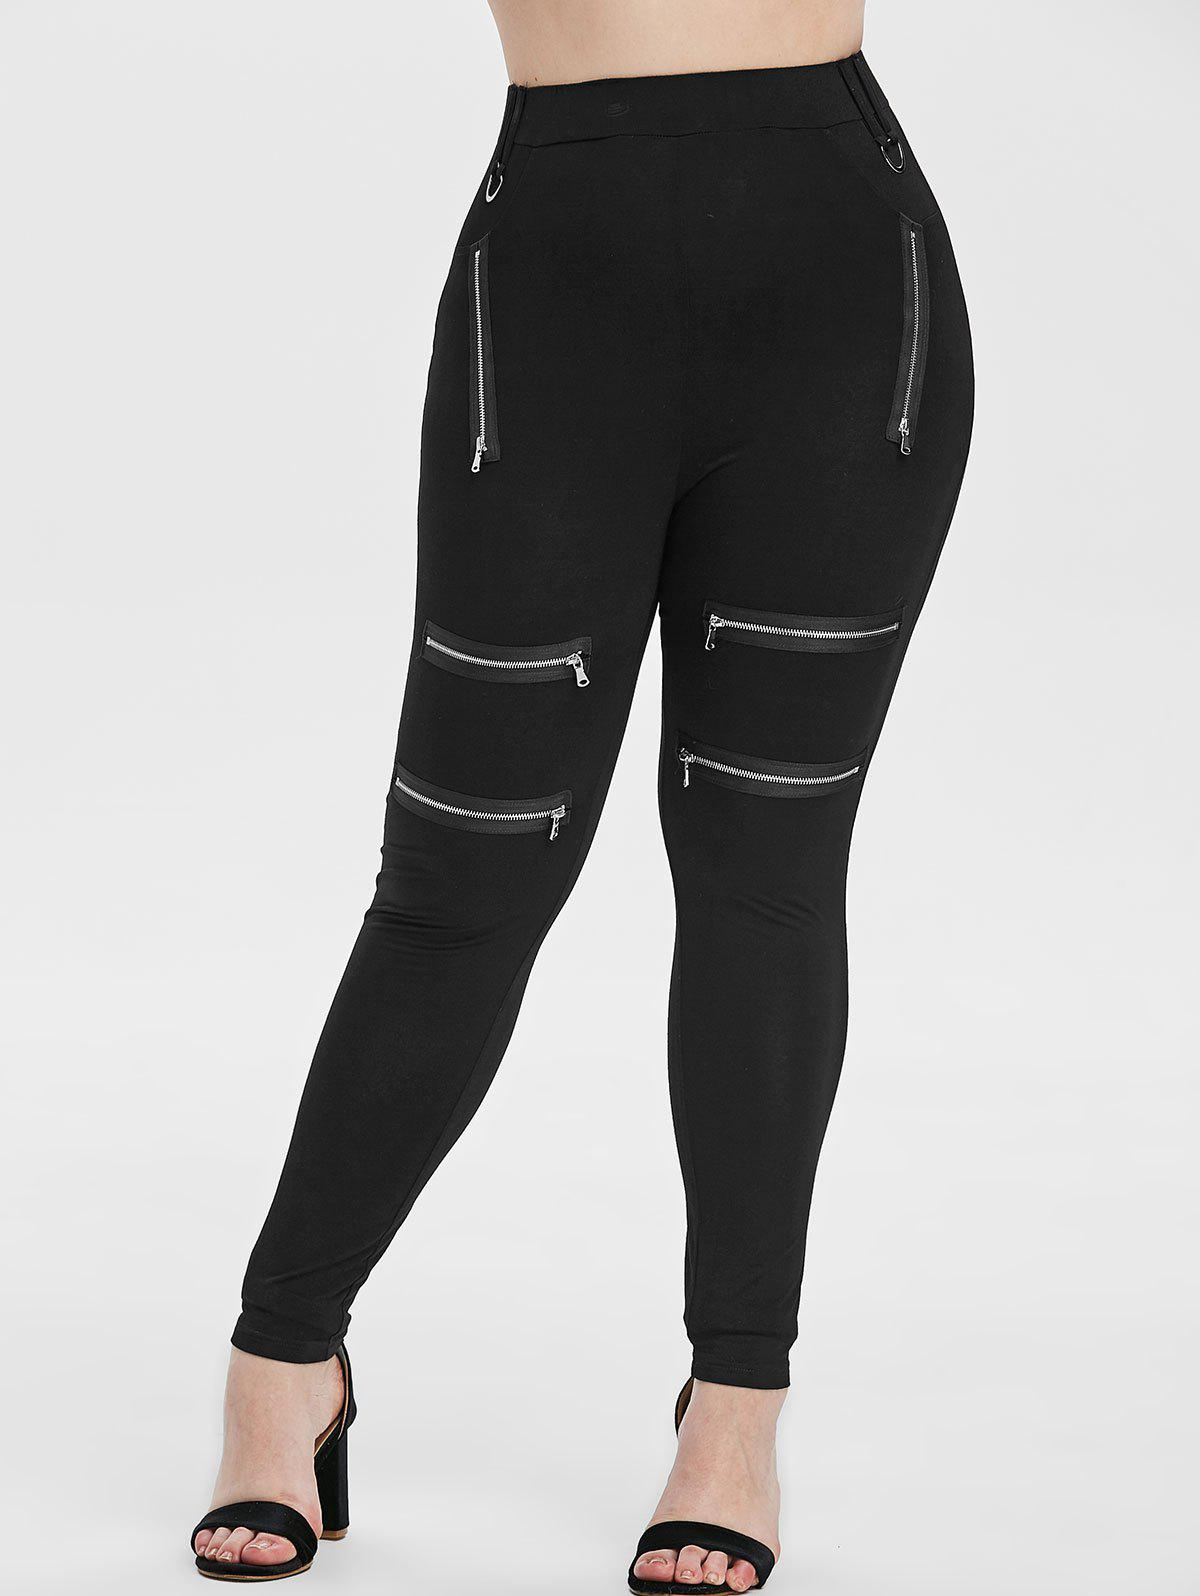 Plus Size Zipper Embellished Fitted Leggings - BLACK 1X